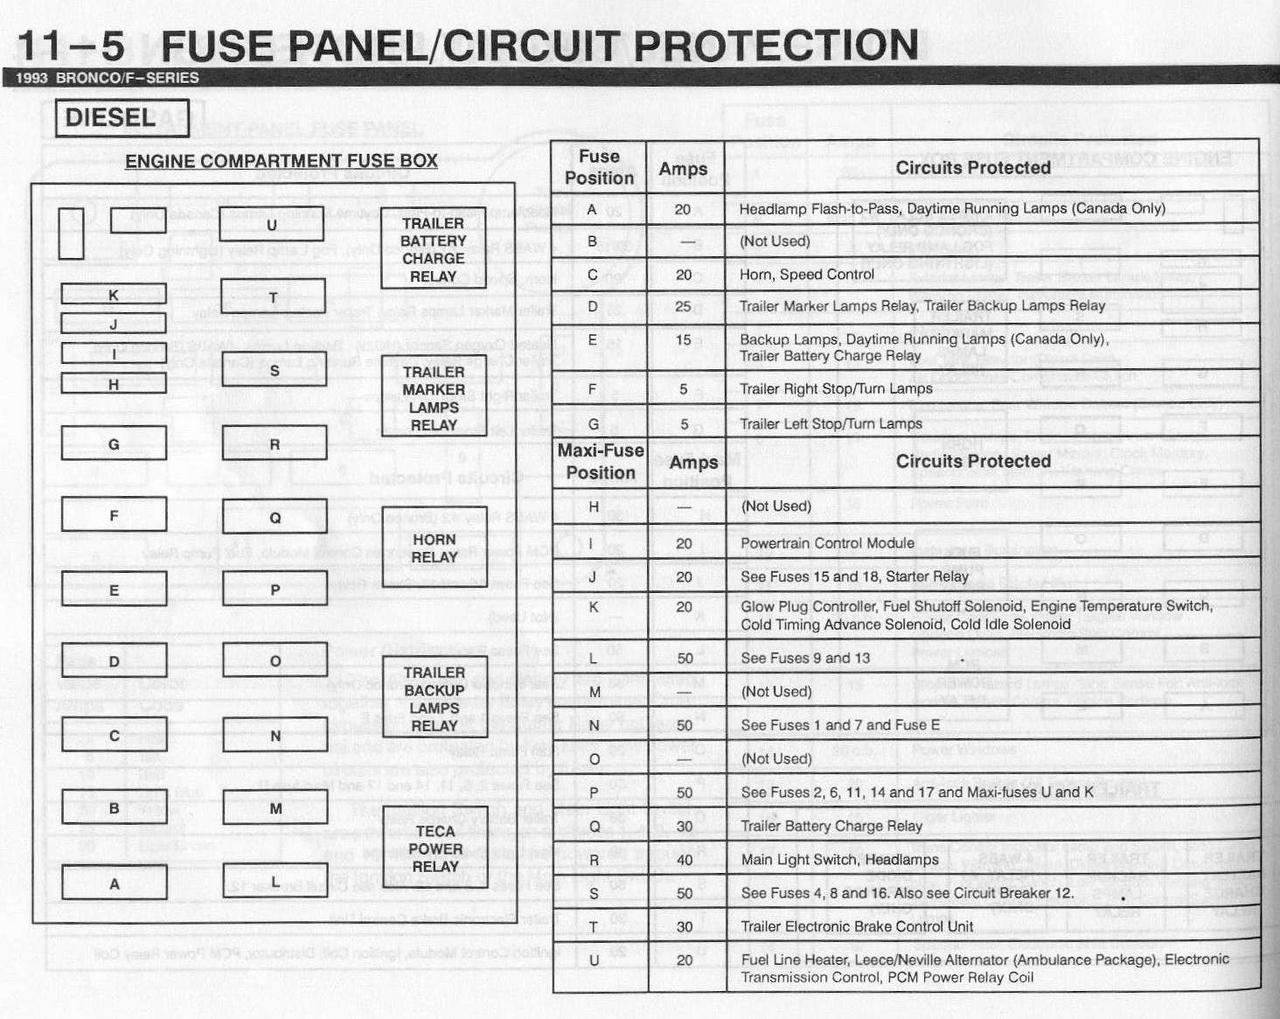 96 bronco fuse box diagram online wiring diagram94 f150 fuse box online wiring diagram95 f250 fuse box wiring diagramford f 350 fuse box